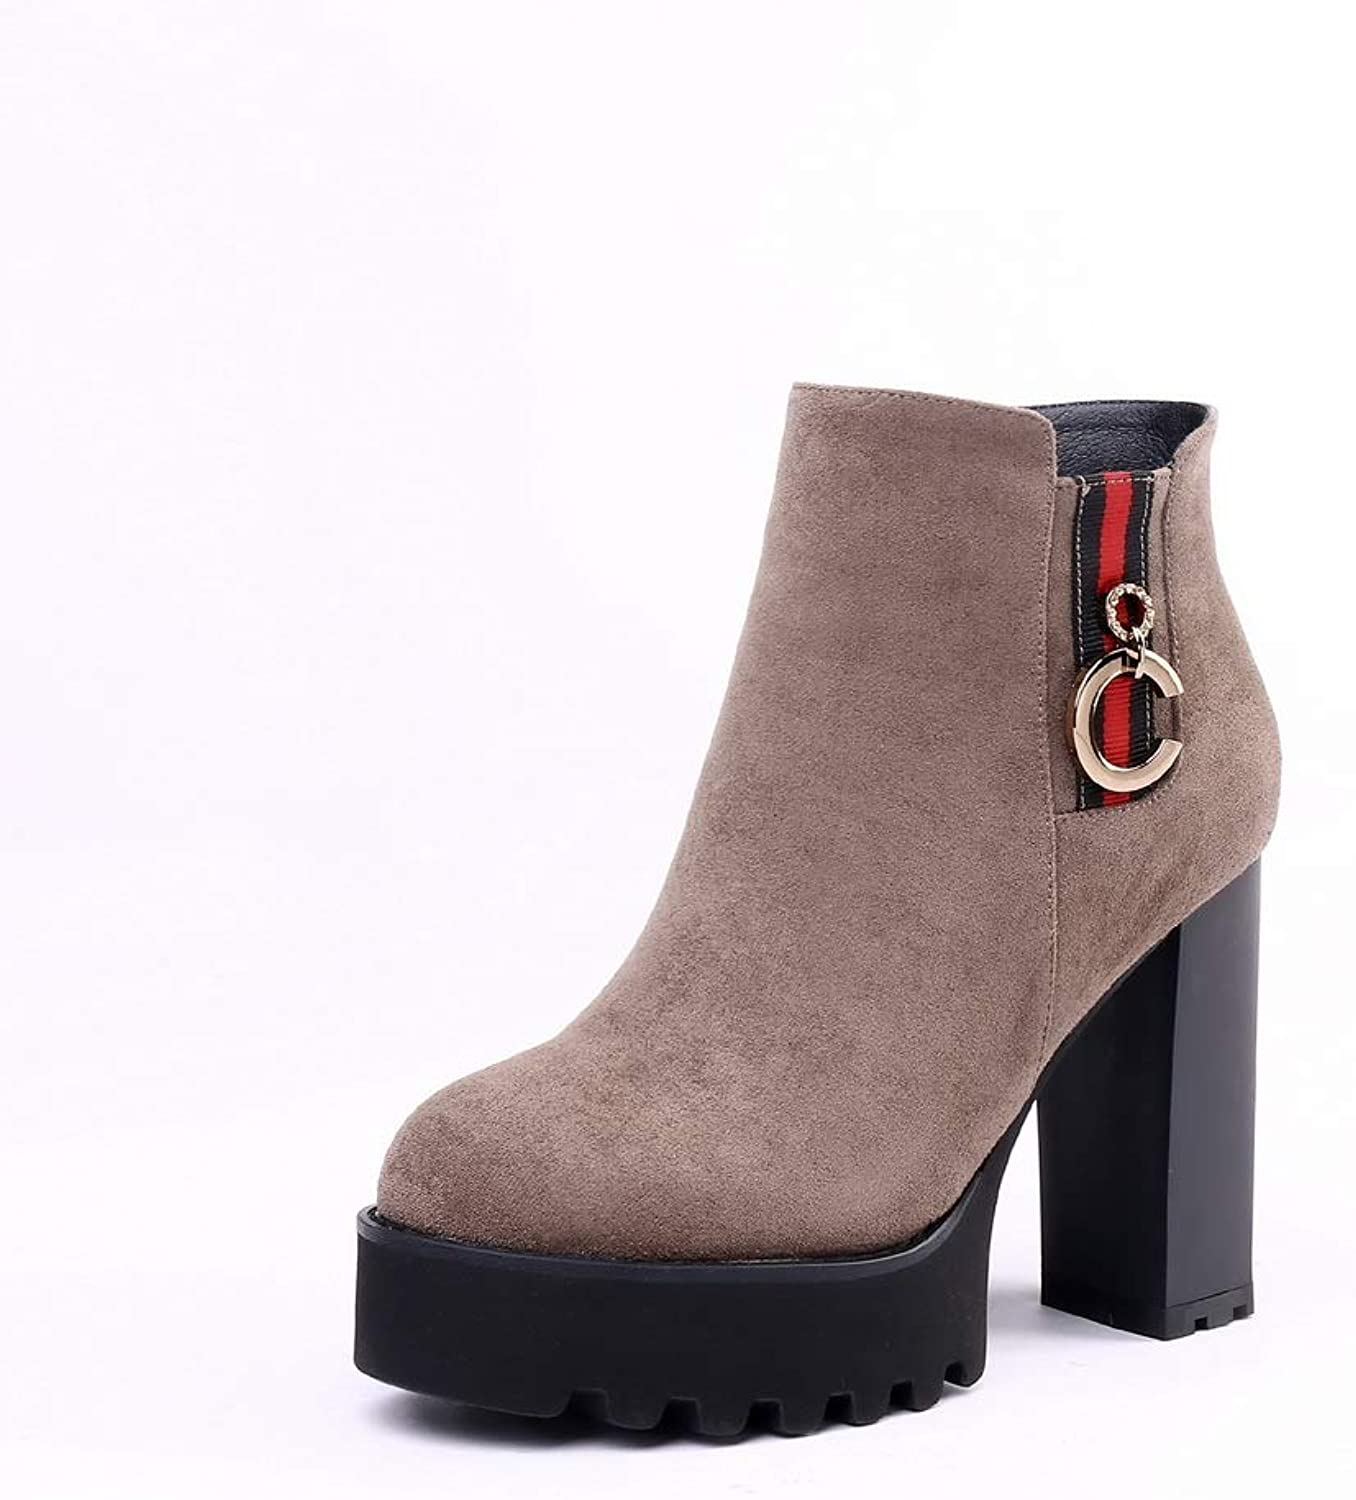 1TO9 Womens High-Heels Charms Platform Urethane Boots MNS03448